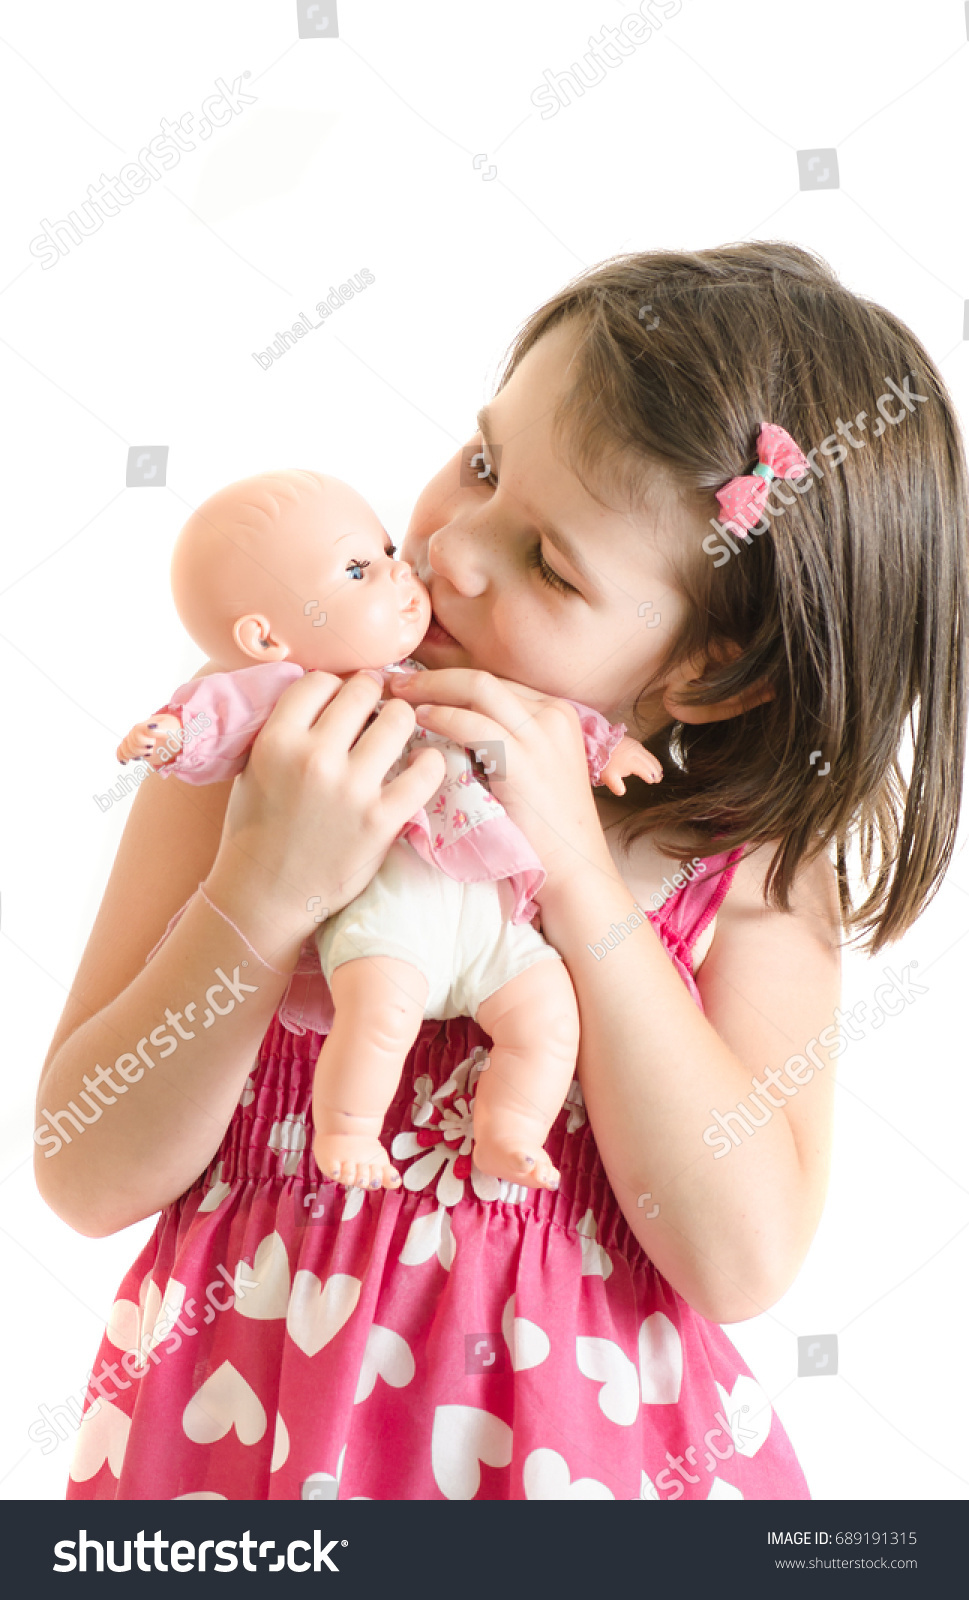 22bb2f76be80 Sweet Little Girl Pink Dress Hold Stock Photo (Edit Now) 689191315 ...